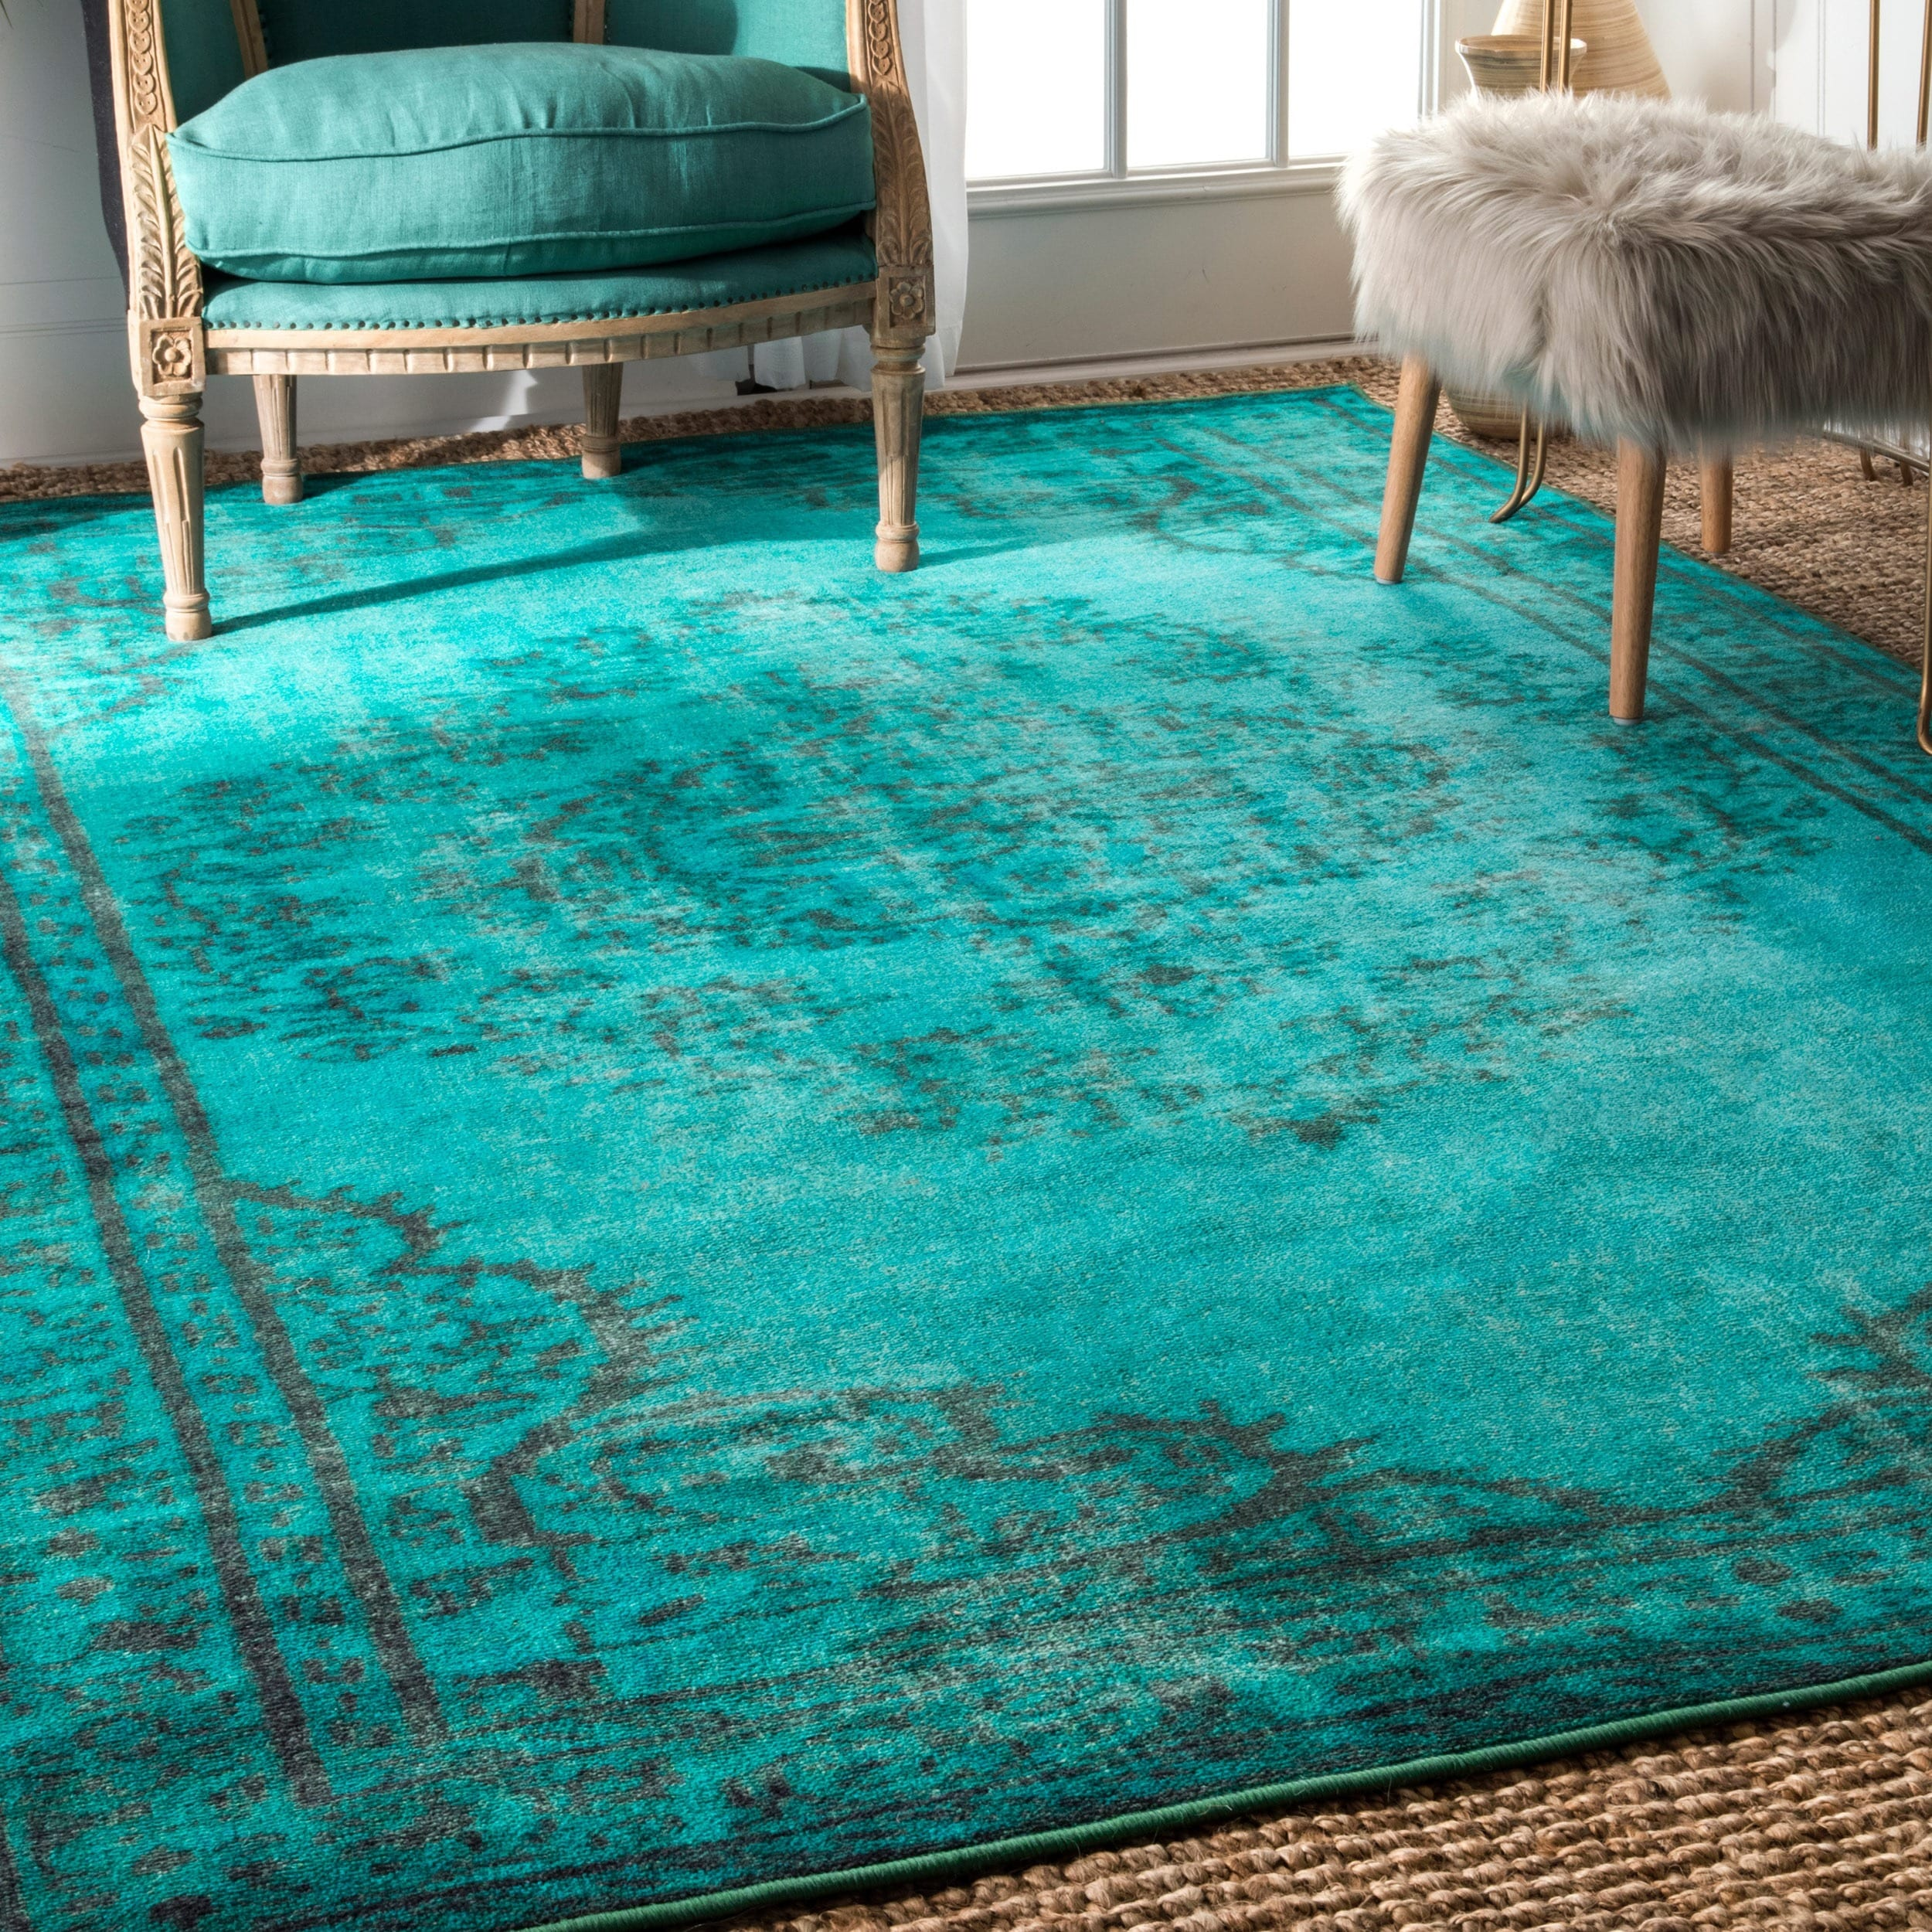 Popular The Curated Nomad Byxbee Vintage Style Overdyed Area Rug - 5' x 8  LT18